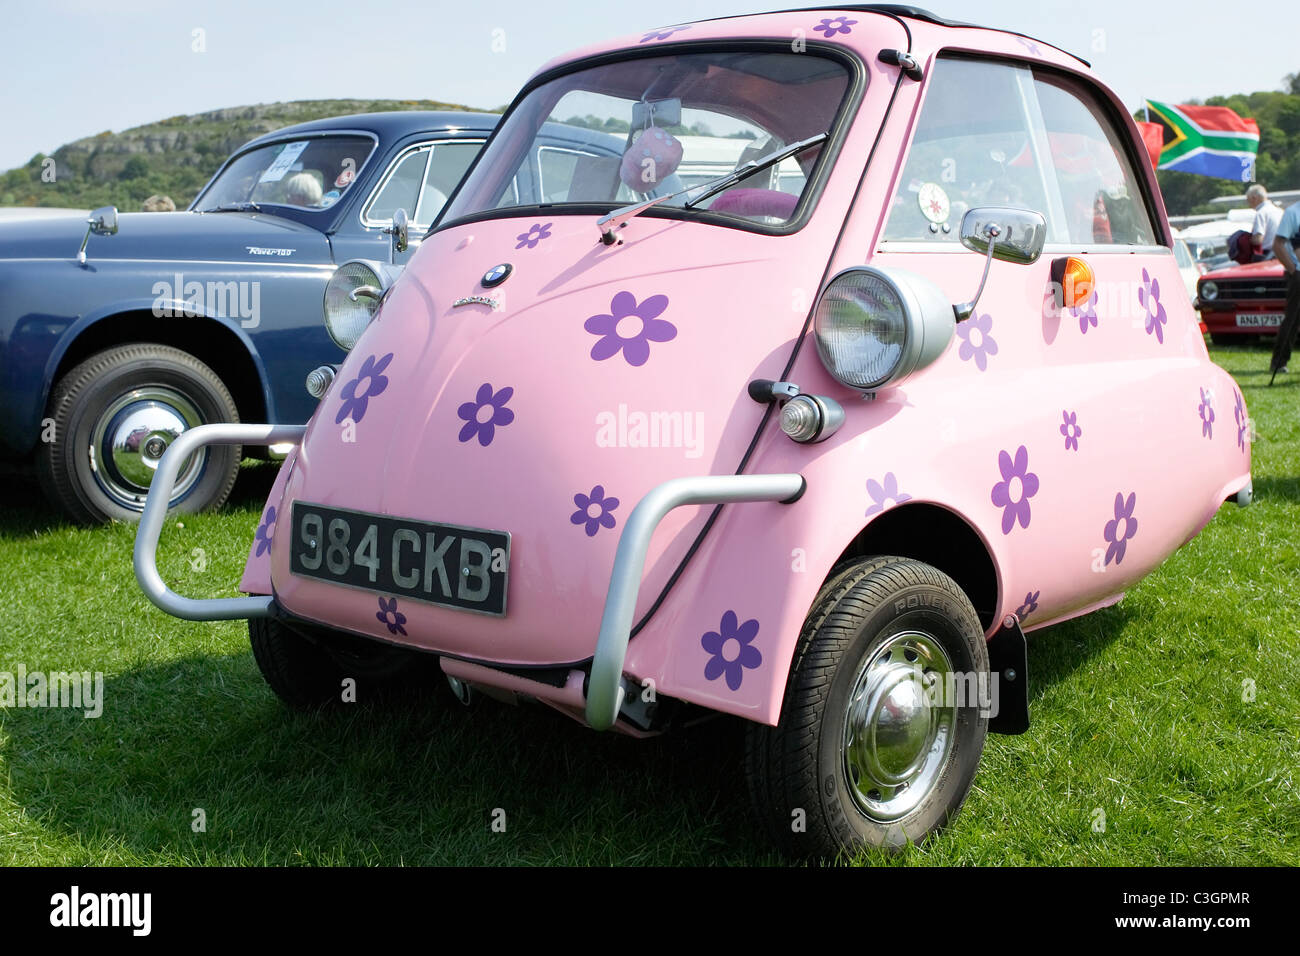 A Funky Flower Power Bmw Isetta Bubble Car In Shocking Pink